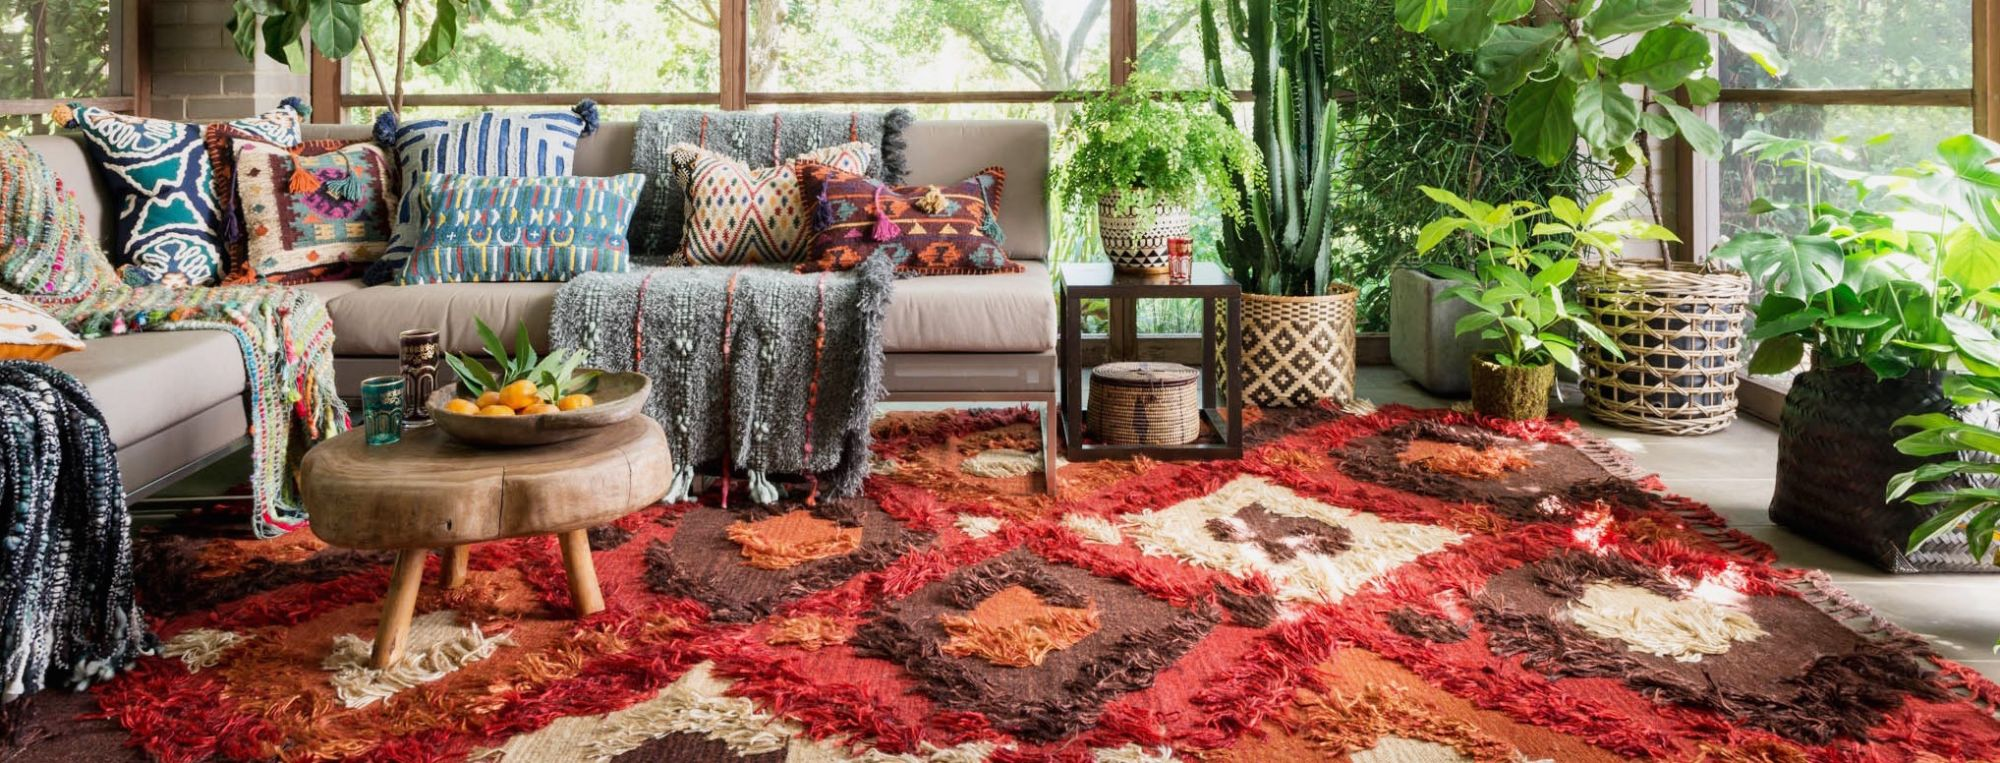 Moroccan rug Wedding blanket Gift idea